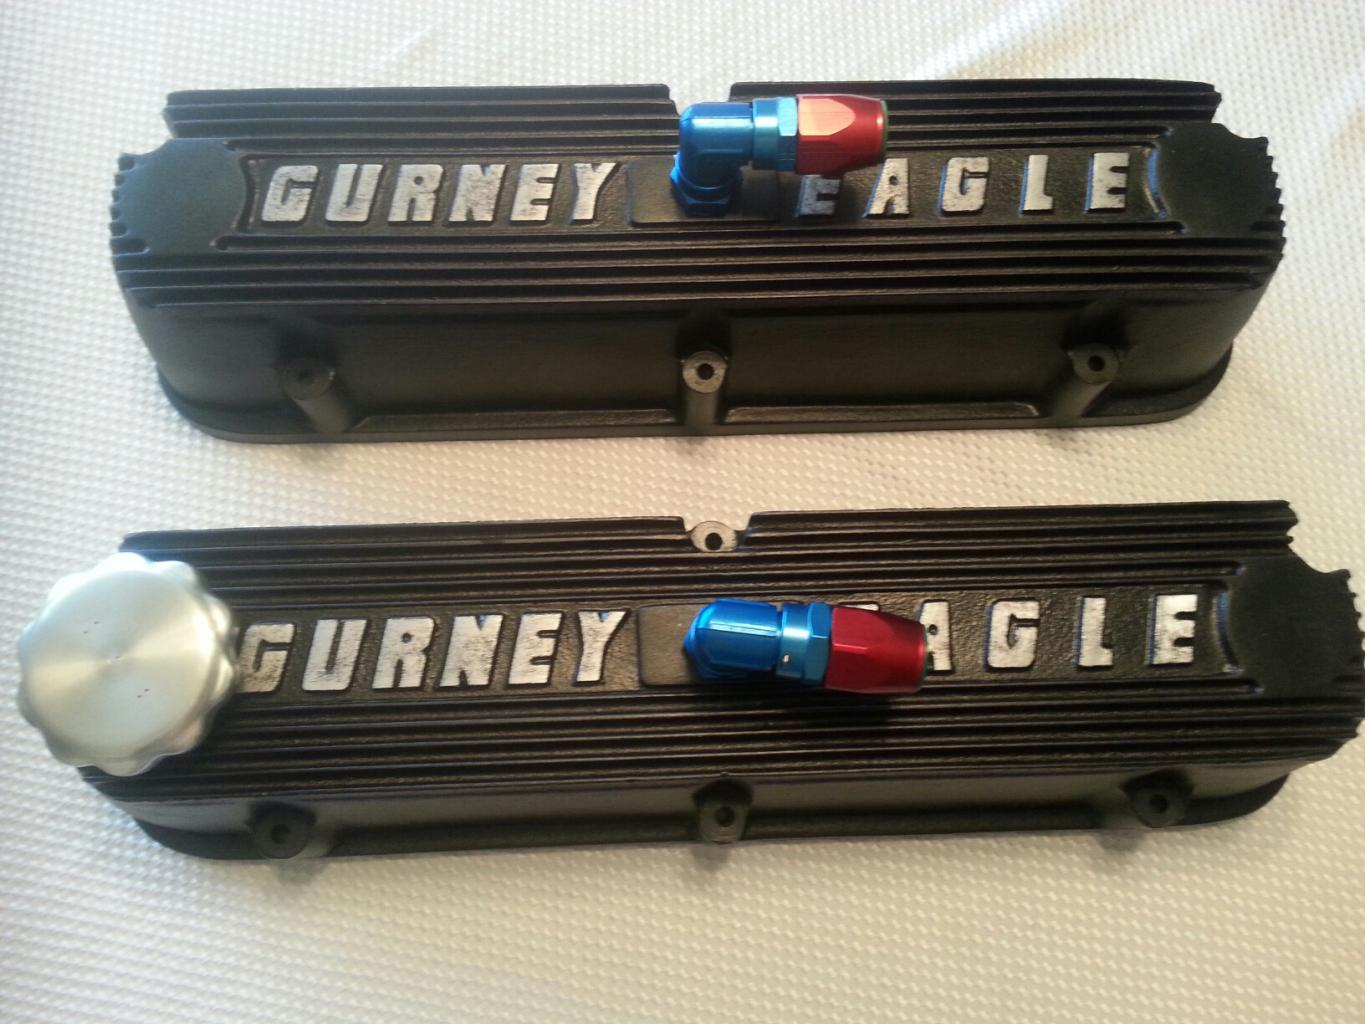 Gurney Eagle replica valve covers and cold air box-7125-jpg